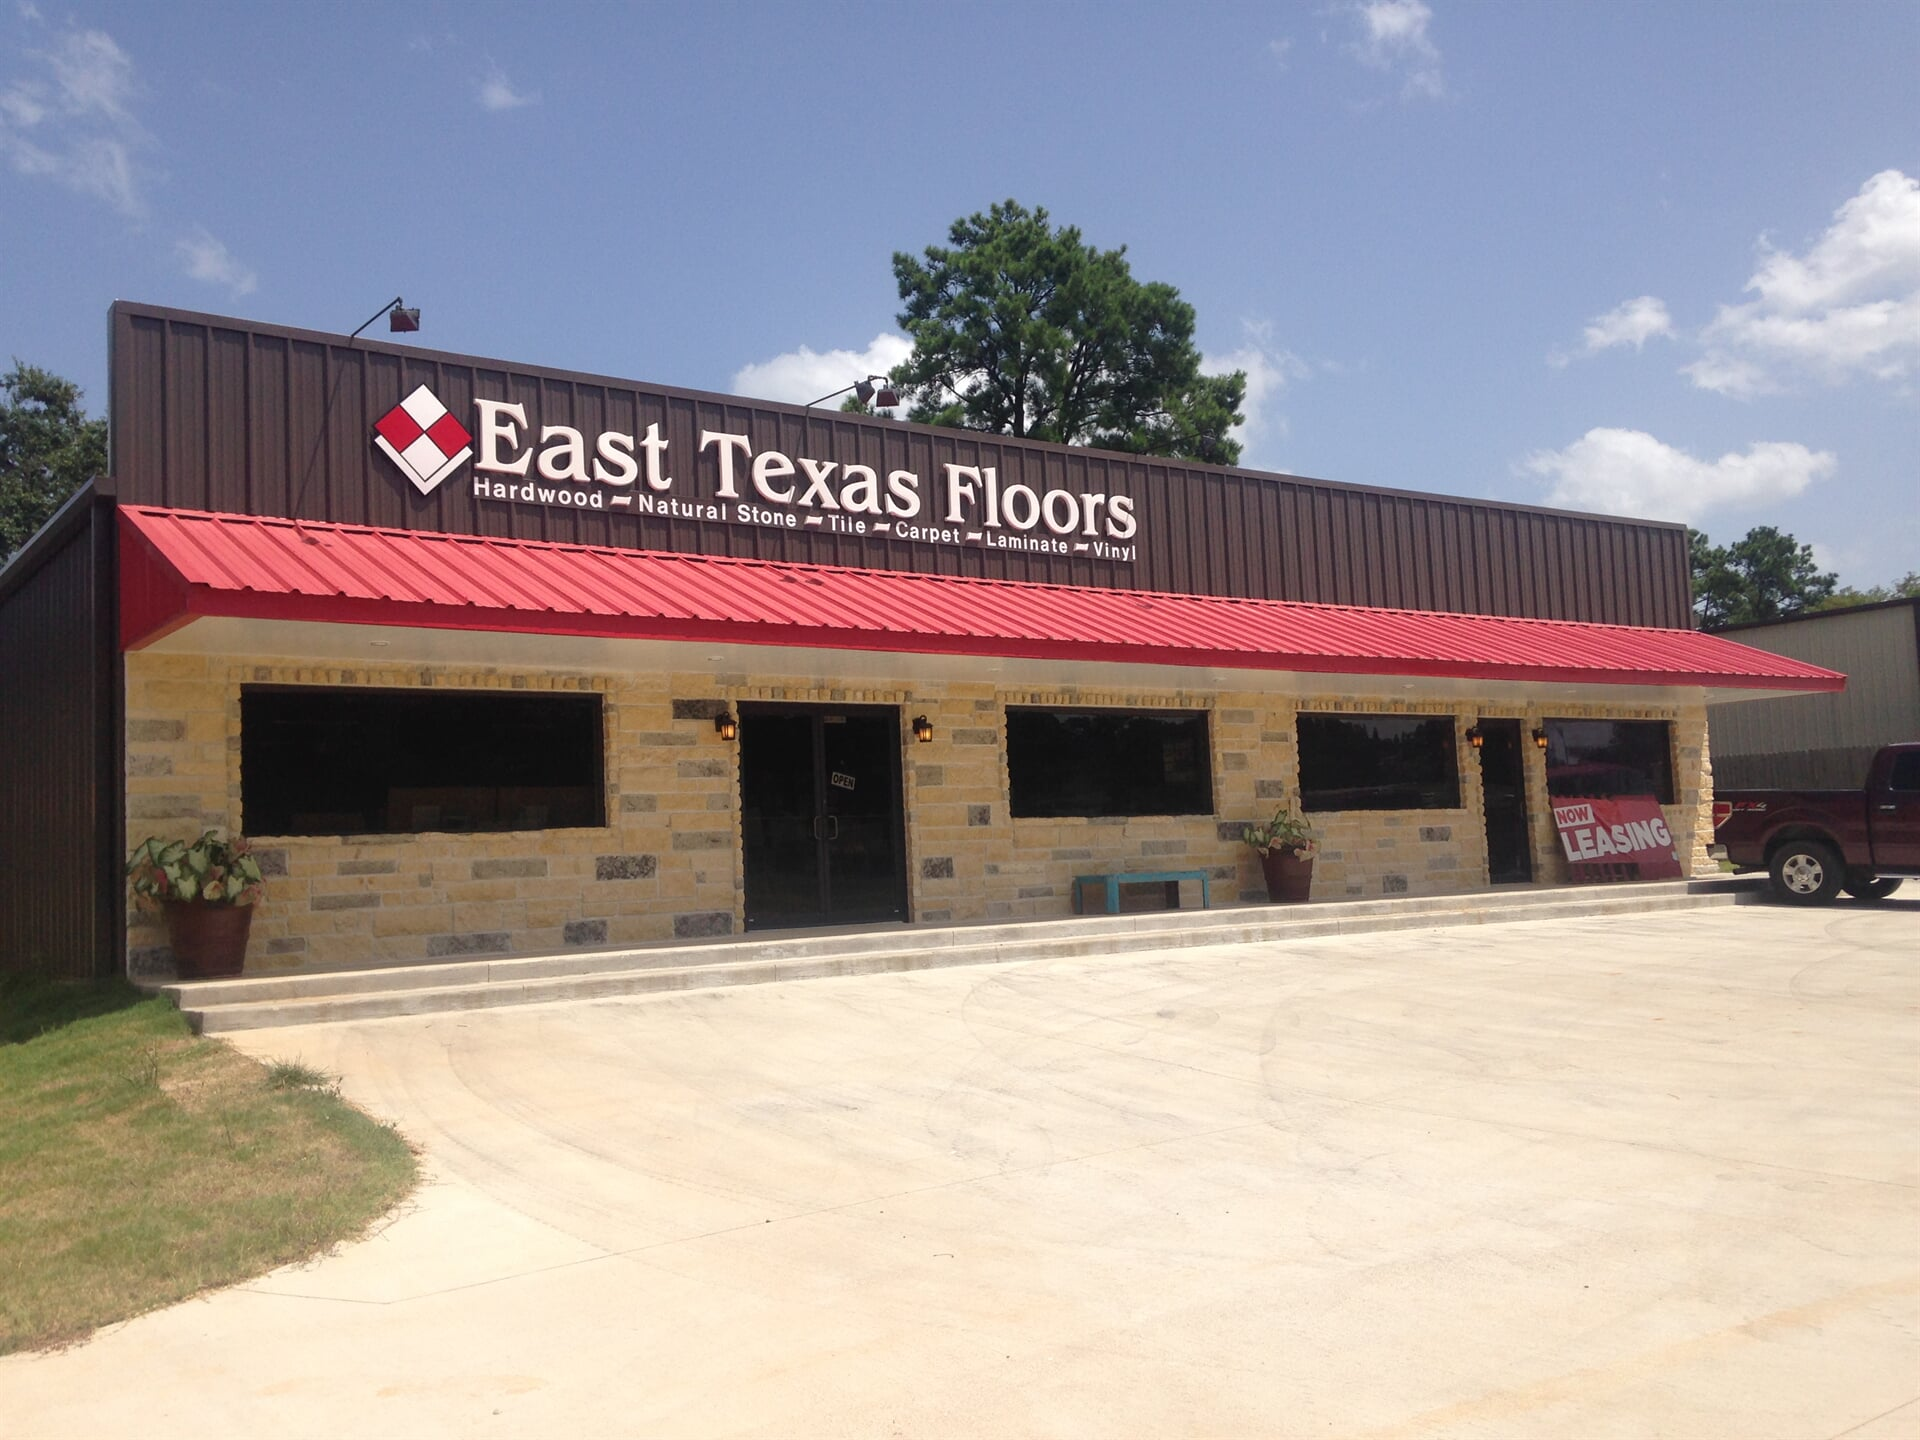 The East Texas Floors store front in Tyler, TX